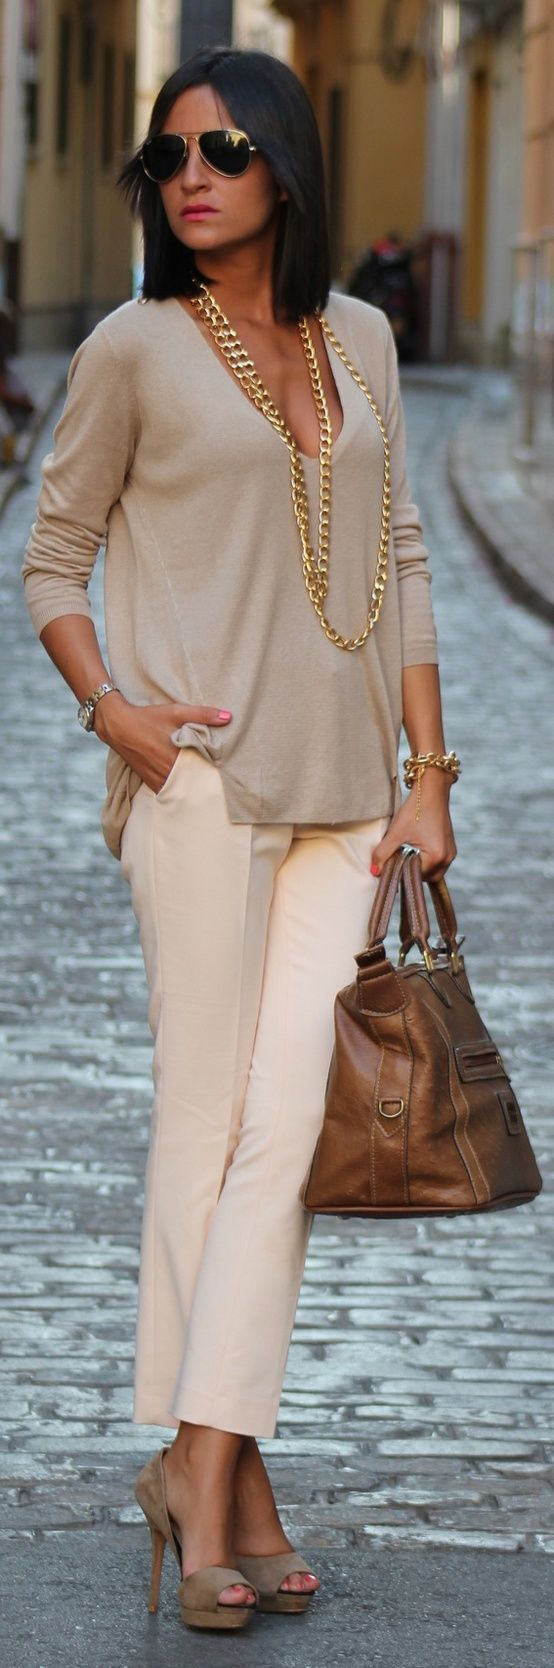 Pin by Donna Vacca on Looks I Like | Pinterest | Church outfits, Tan heels  and White pants